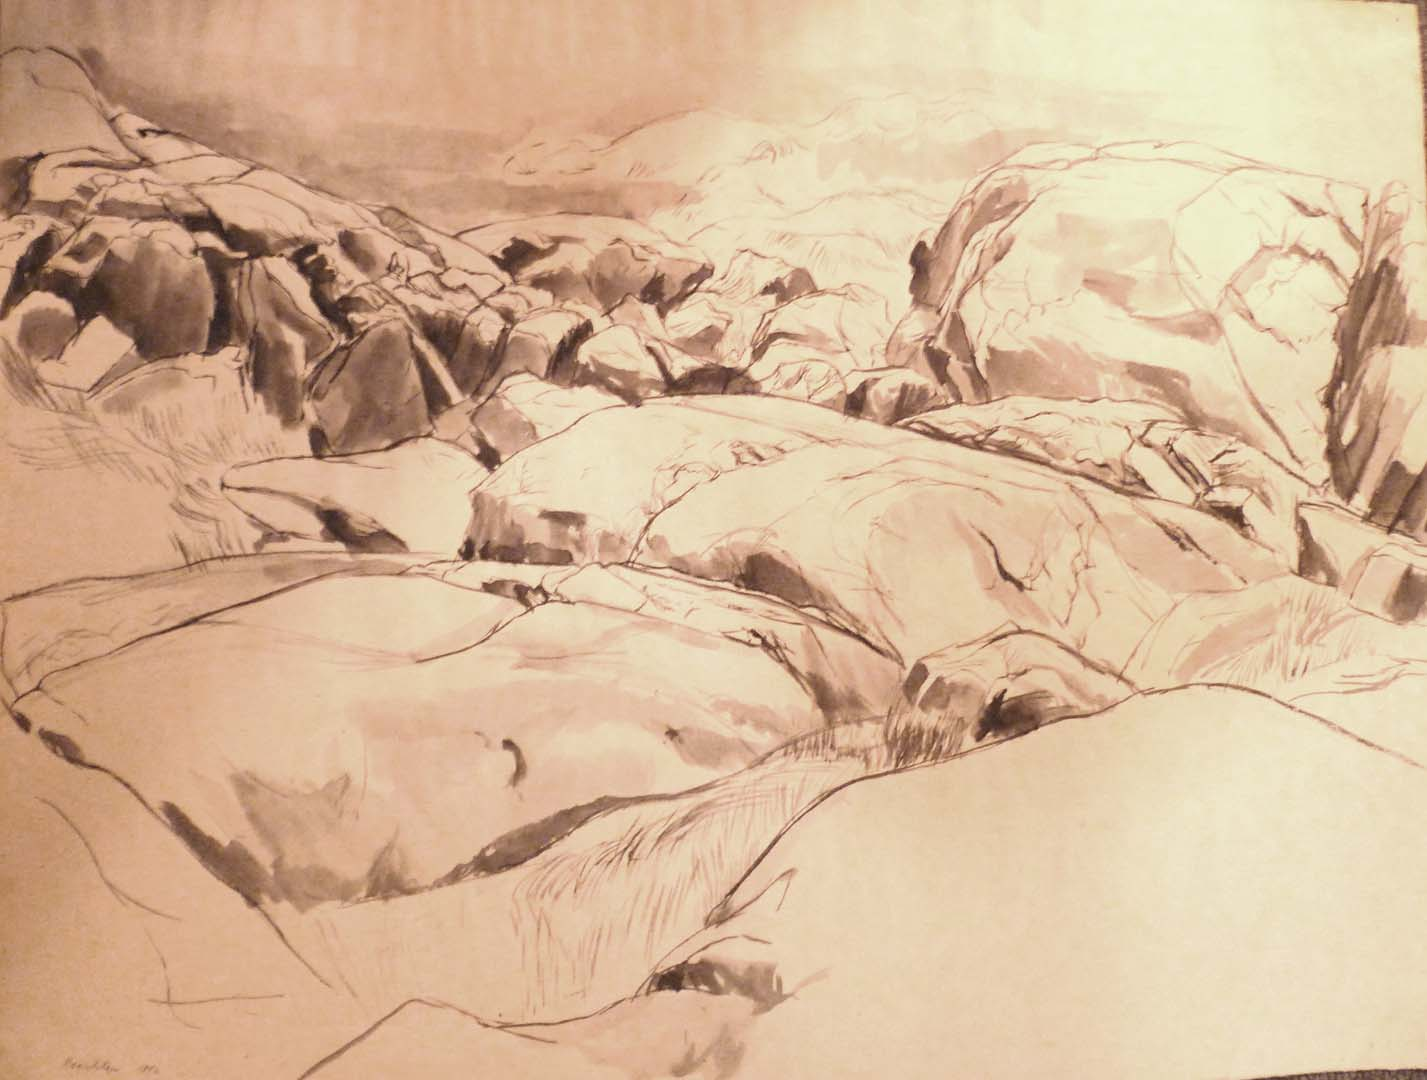 1956 Untitled (Rocks) Watercolor Wash on Paper 18.75 x 24.75